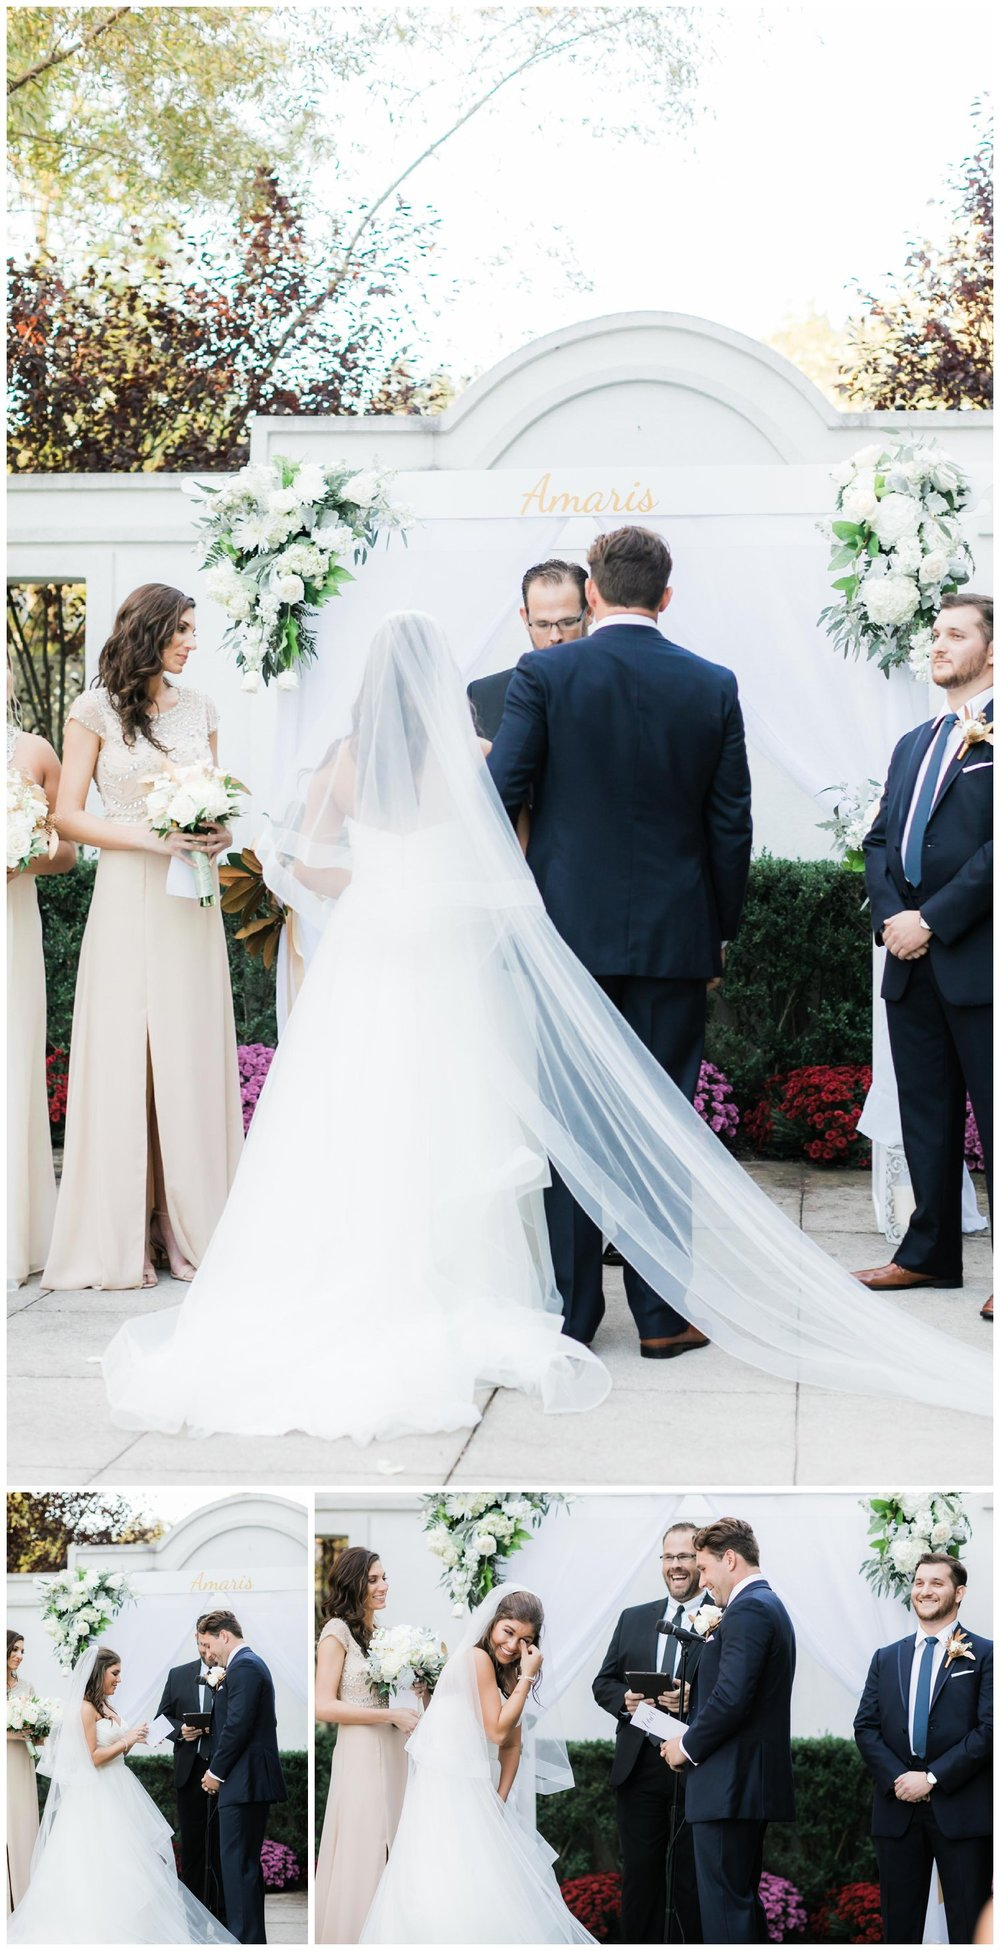 JenandEd_NewJerseyWedding_CarriageHouse_Galloway_NJ__SouthJersey_Wedding_Photographer_MagdalenaStudios_0237.jpg